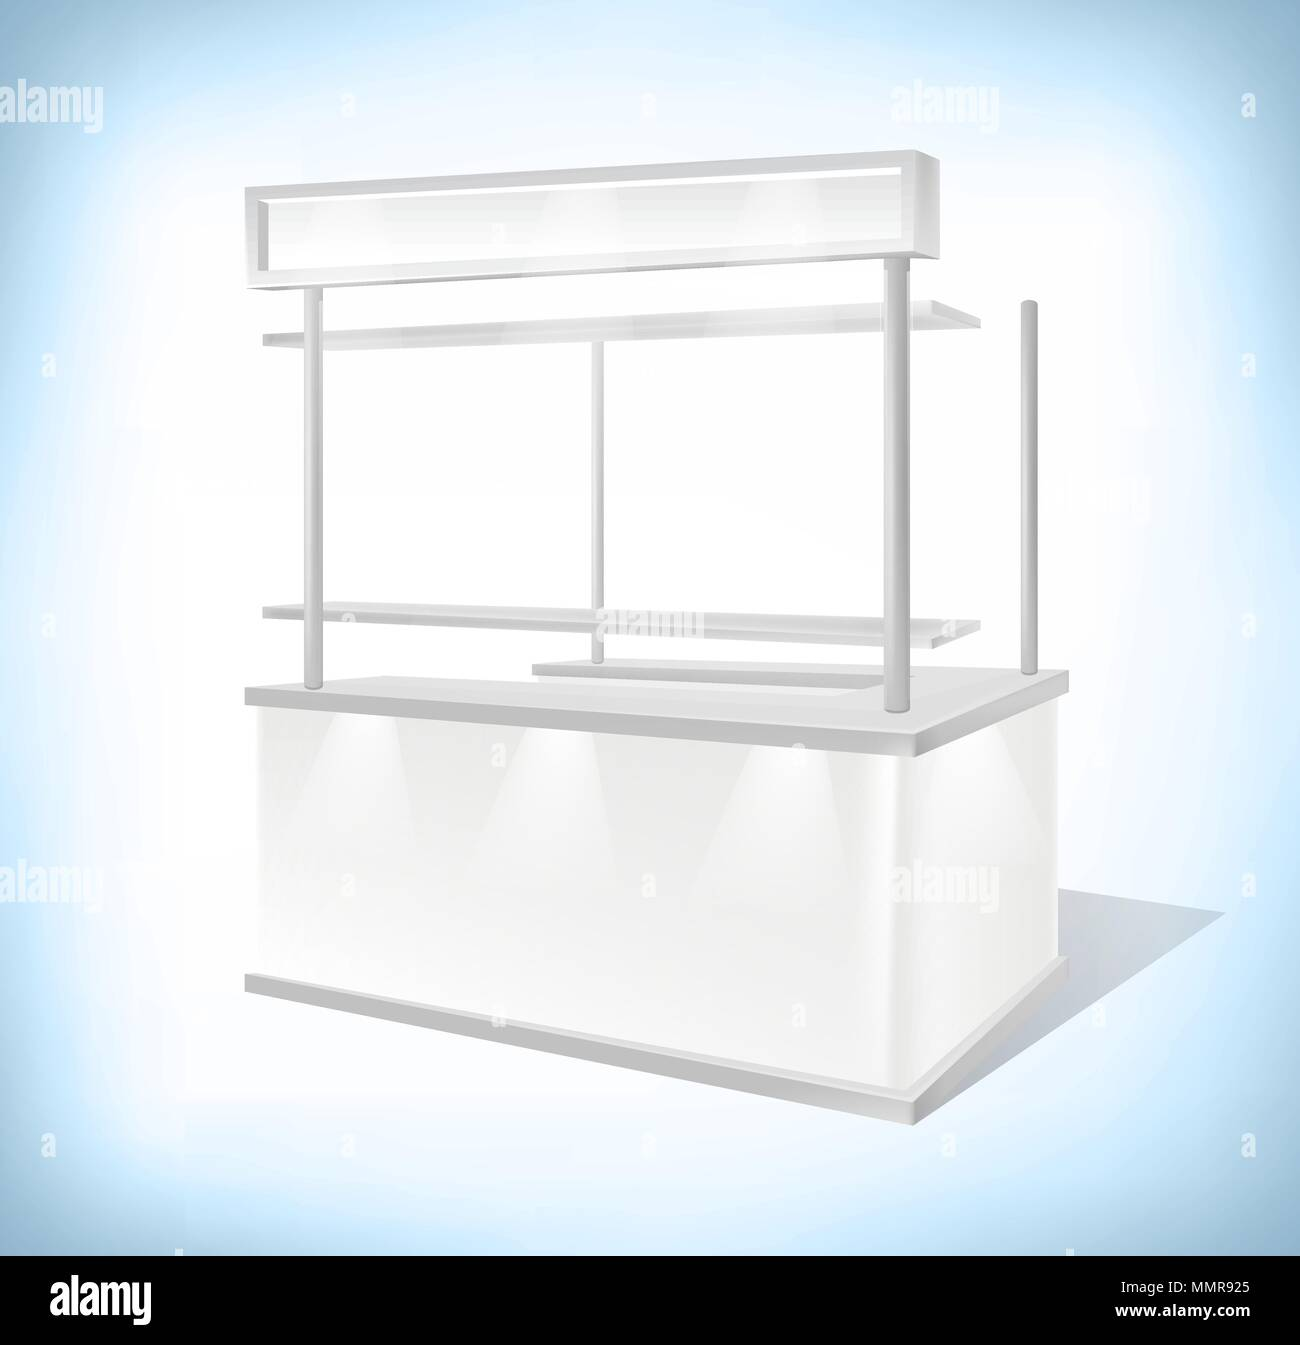 Exhibition Stall Mockup : Trade exhibition promo stand sales kiosk retail trade stand. mockup